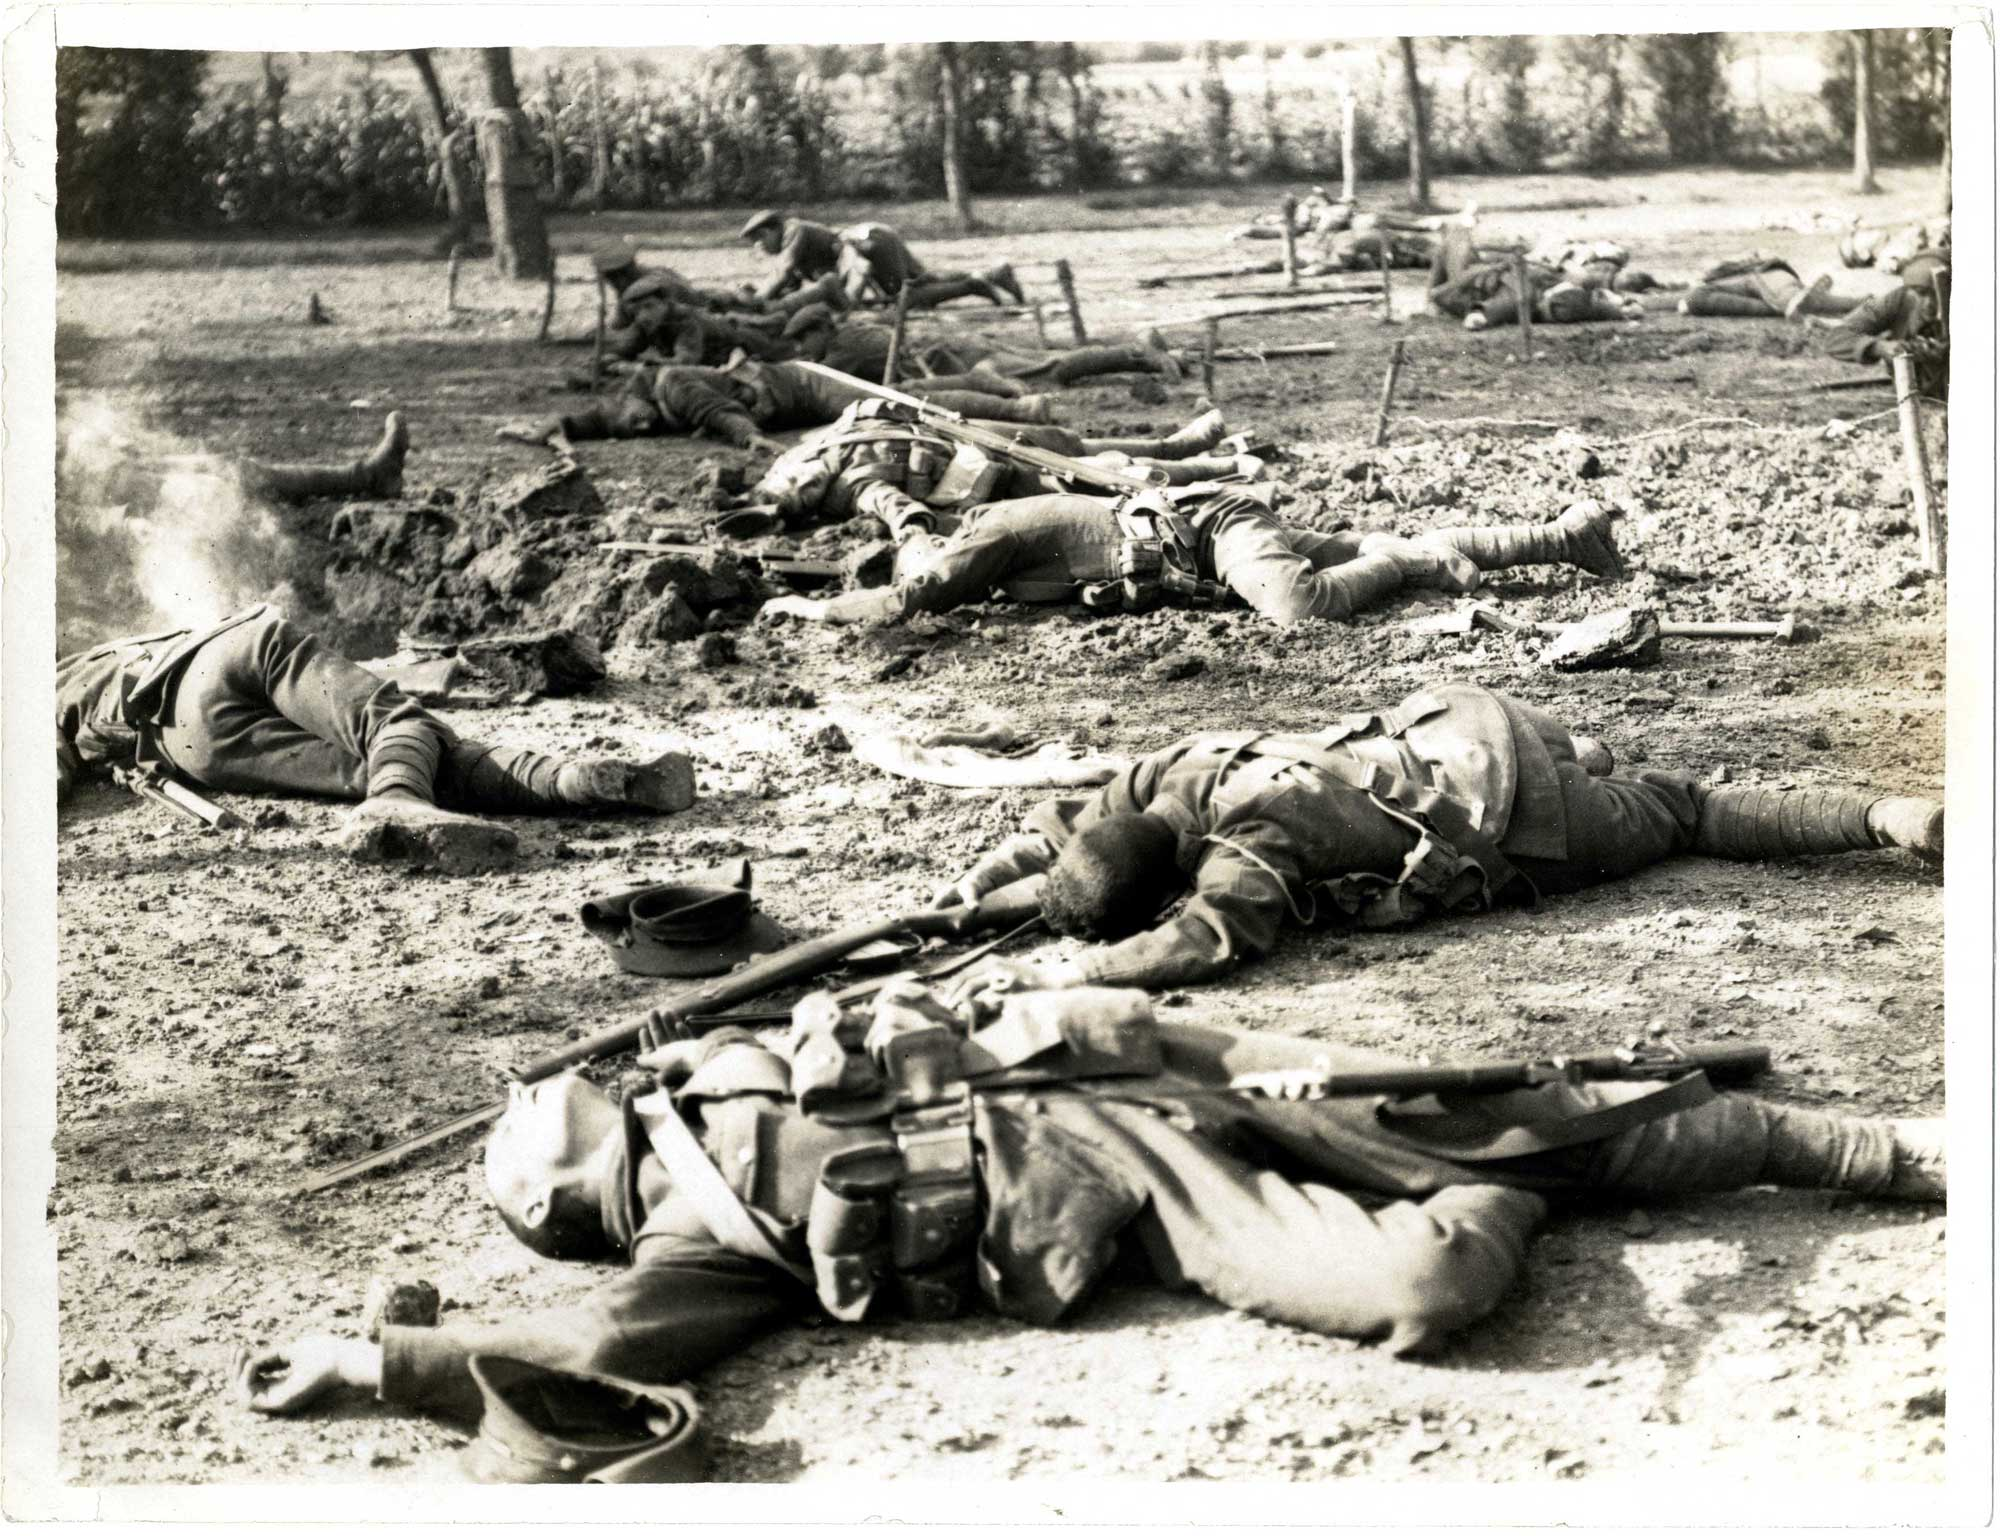 This photograph from 1915, by Canadian-born photographer Charles Hilton DeWitt Girdwood (1878-1964), shows injured and killed soldiers lying in a field after charging. It is not clear whether this is a staged photo or not.